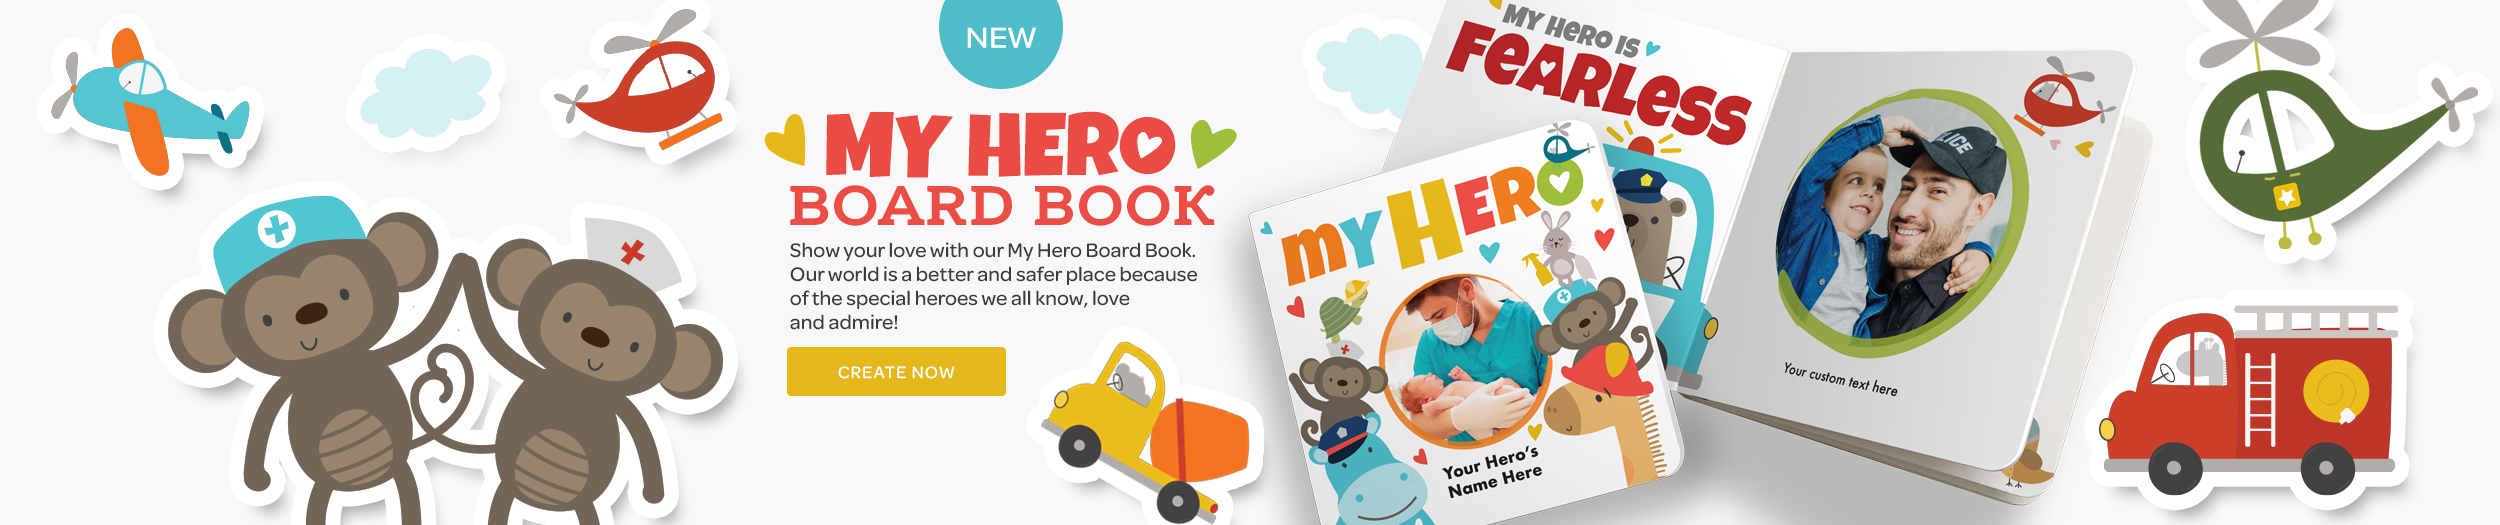 My Hero Board Book